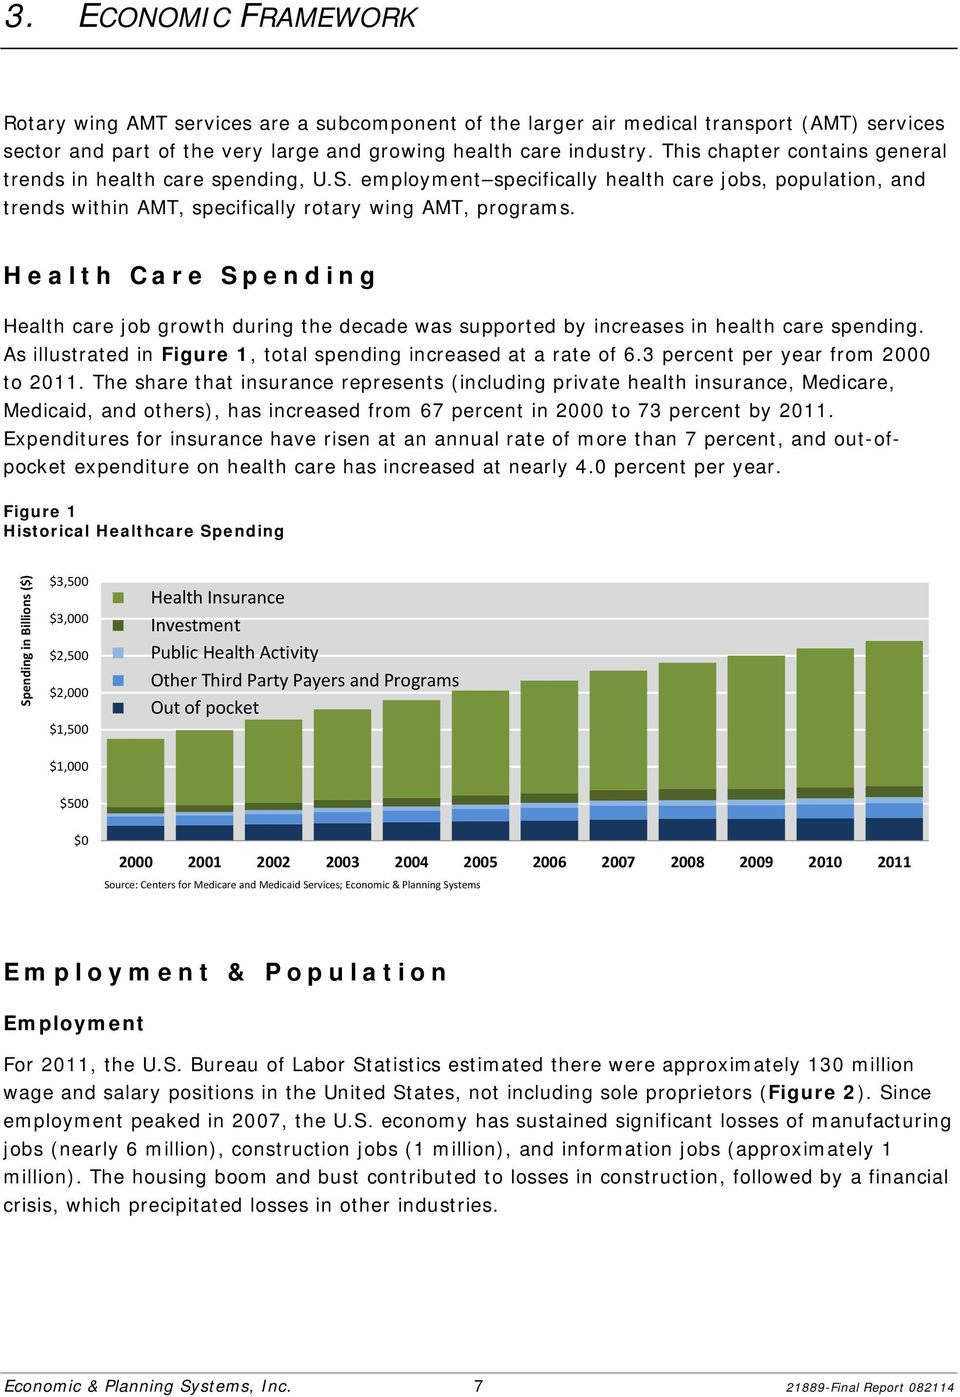 Health Care Spending Health care job growth during the decade was supported by increases in health care spending. As illustrated in Figure 1, total spending increased at a rate of 6.